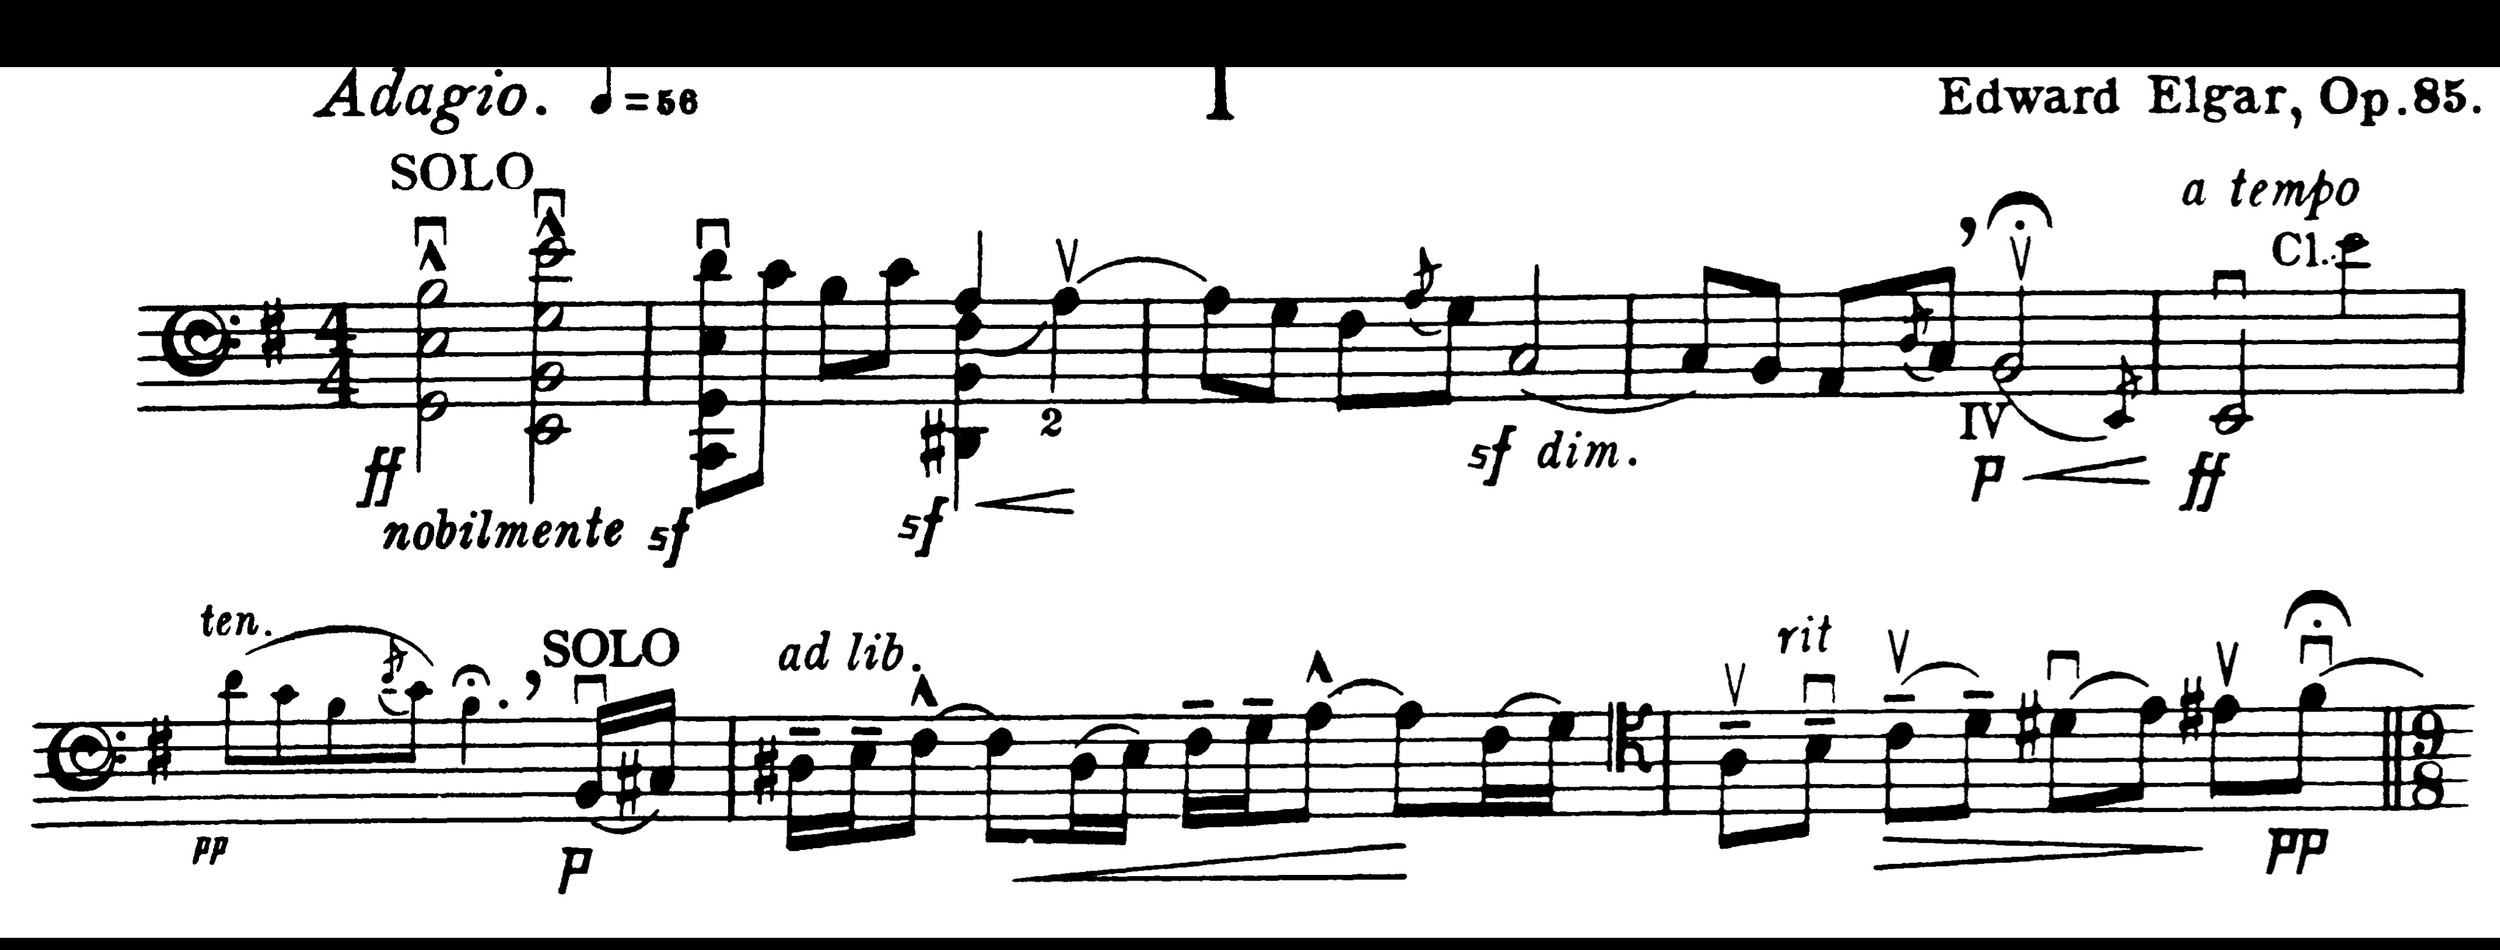 The grand, quasi ad libitum opening of the first movement